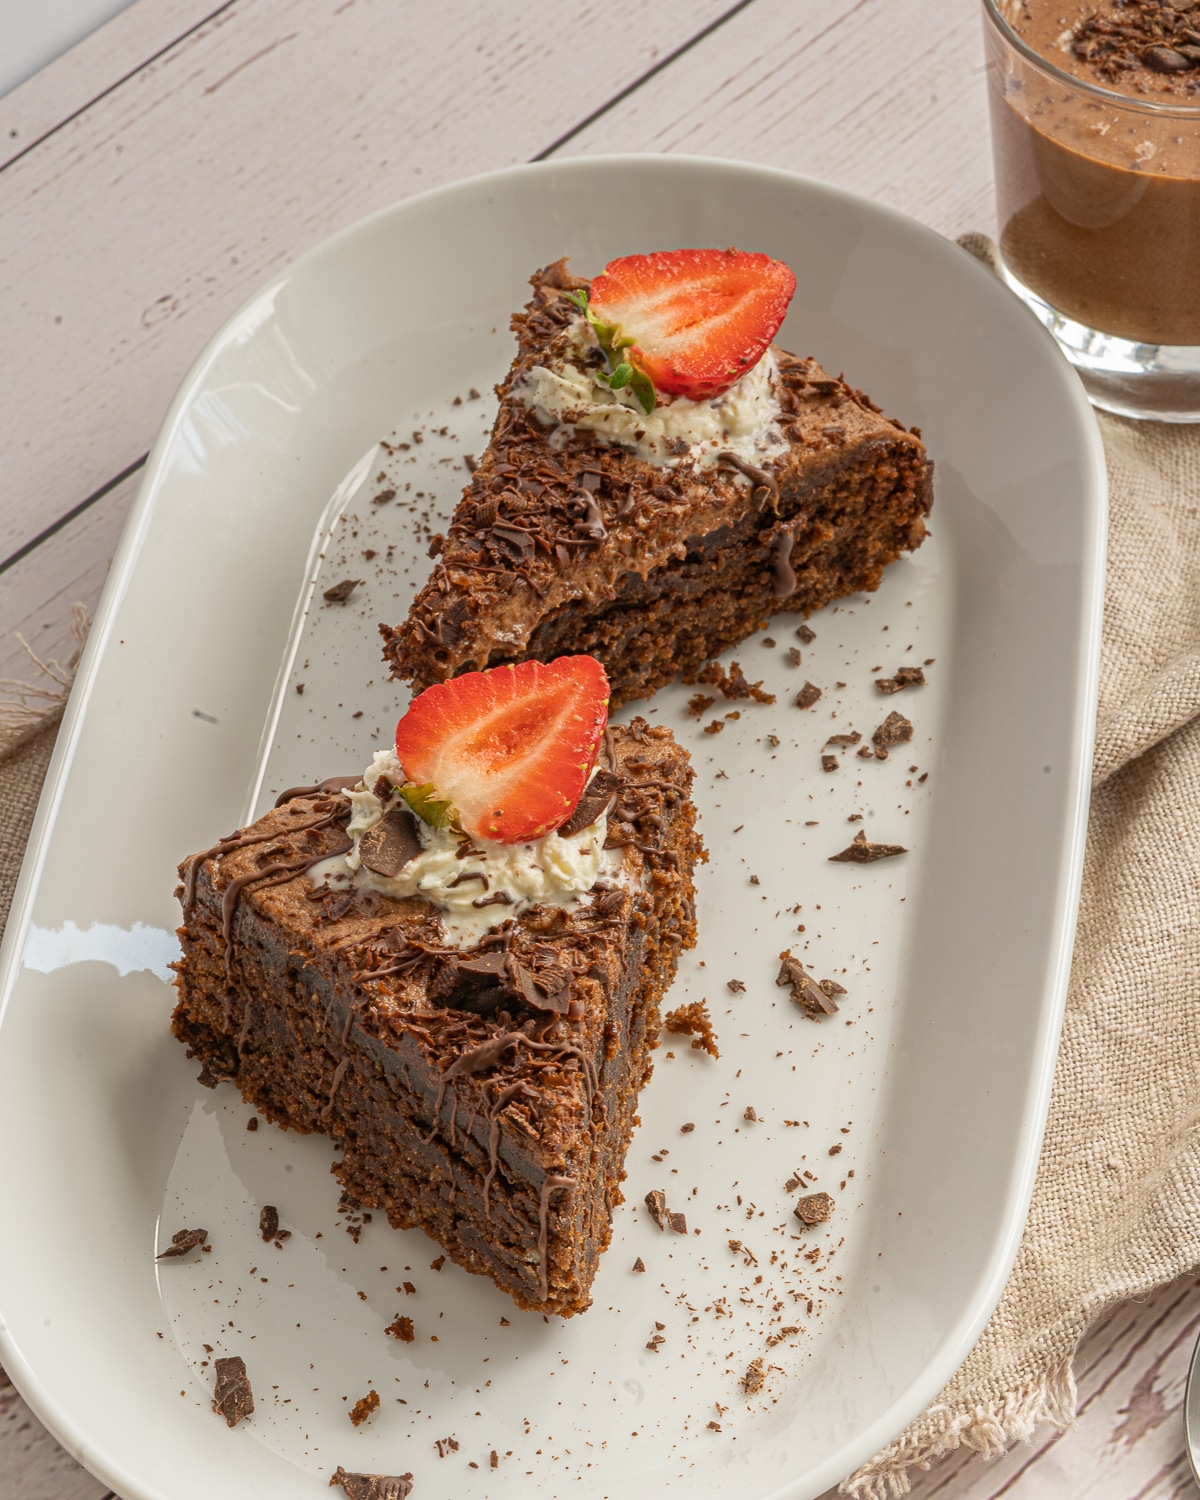 Smooth, rich and decadent, this Low Carb Almond Flour Cake will satisfy the biggest chocolate lovers! It's also gluten free, grain free, sugar free and keto friendly.